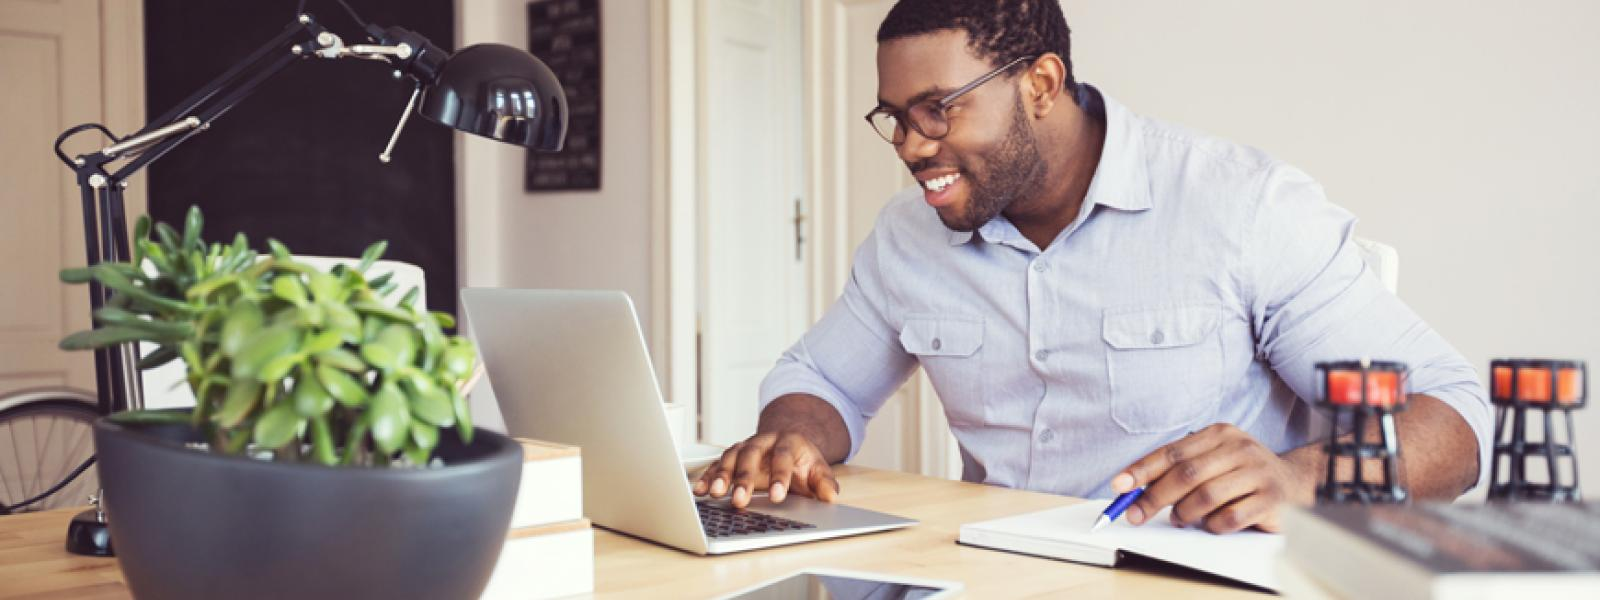 Photo of an online student using a laptop in a home or casual office environment.